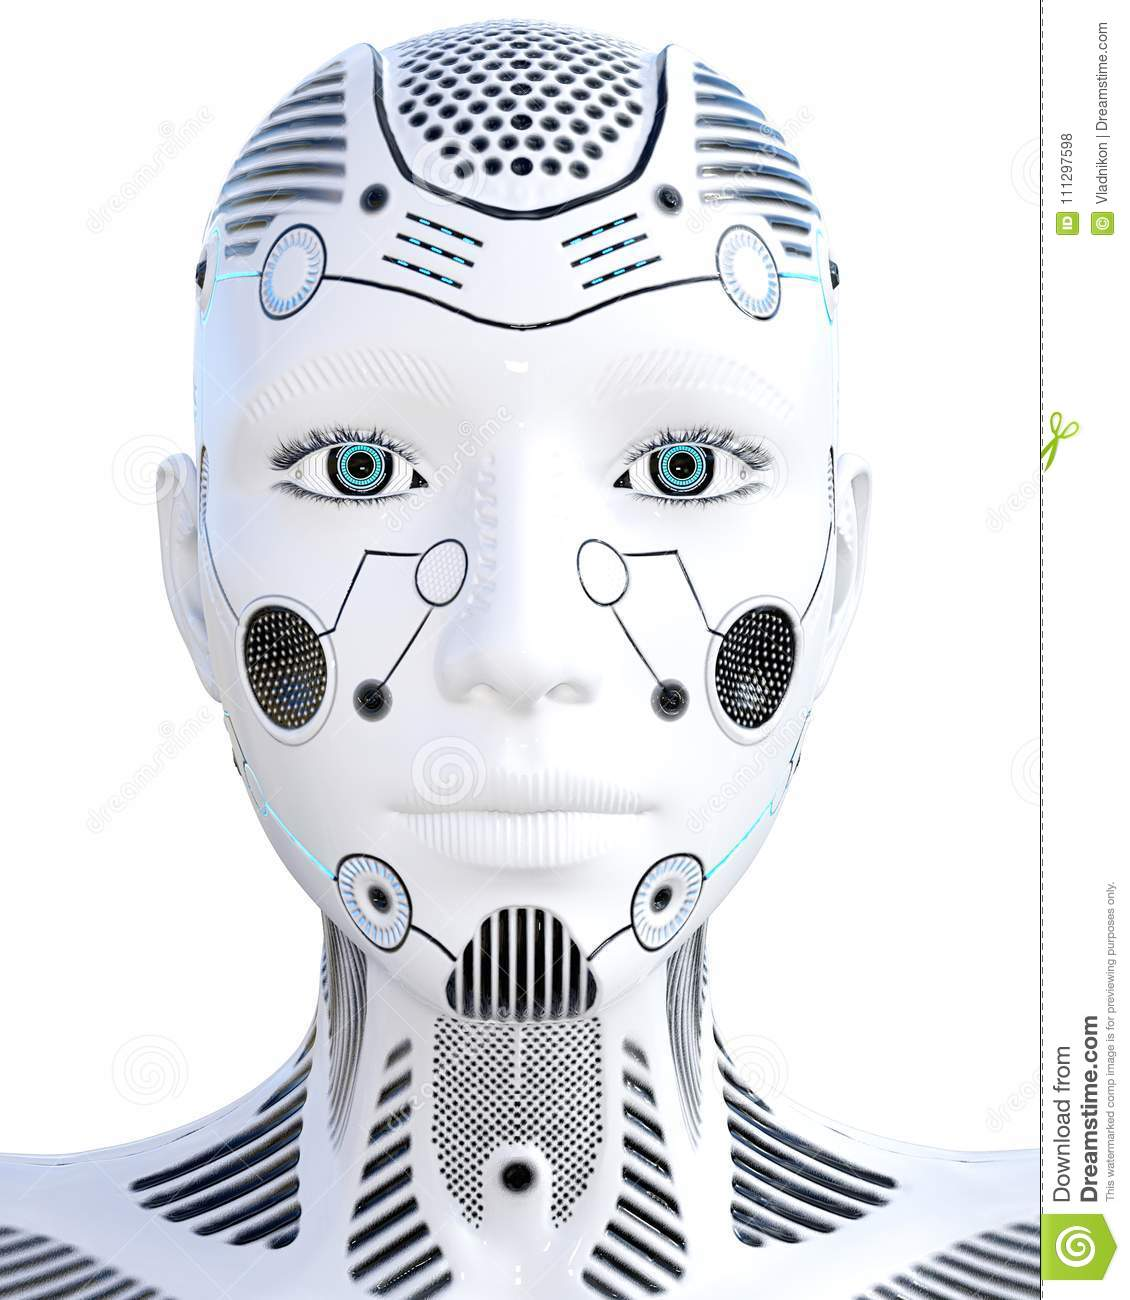 Robot Woman  White Metal Droid  Artificial Intelligence  Stock